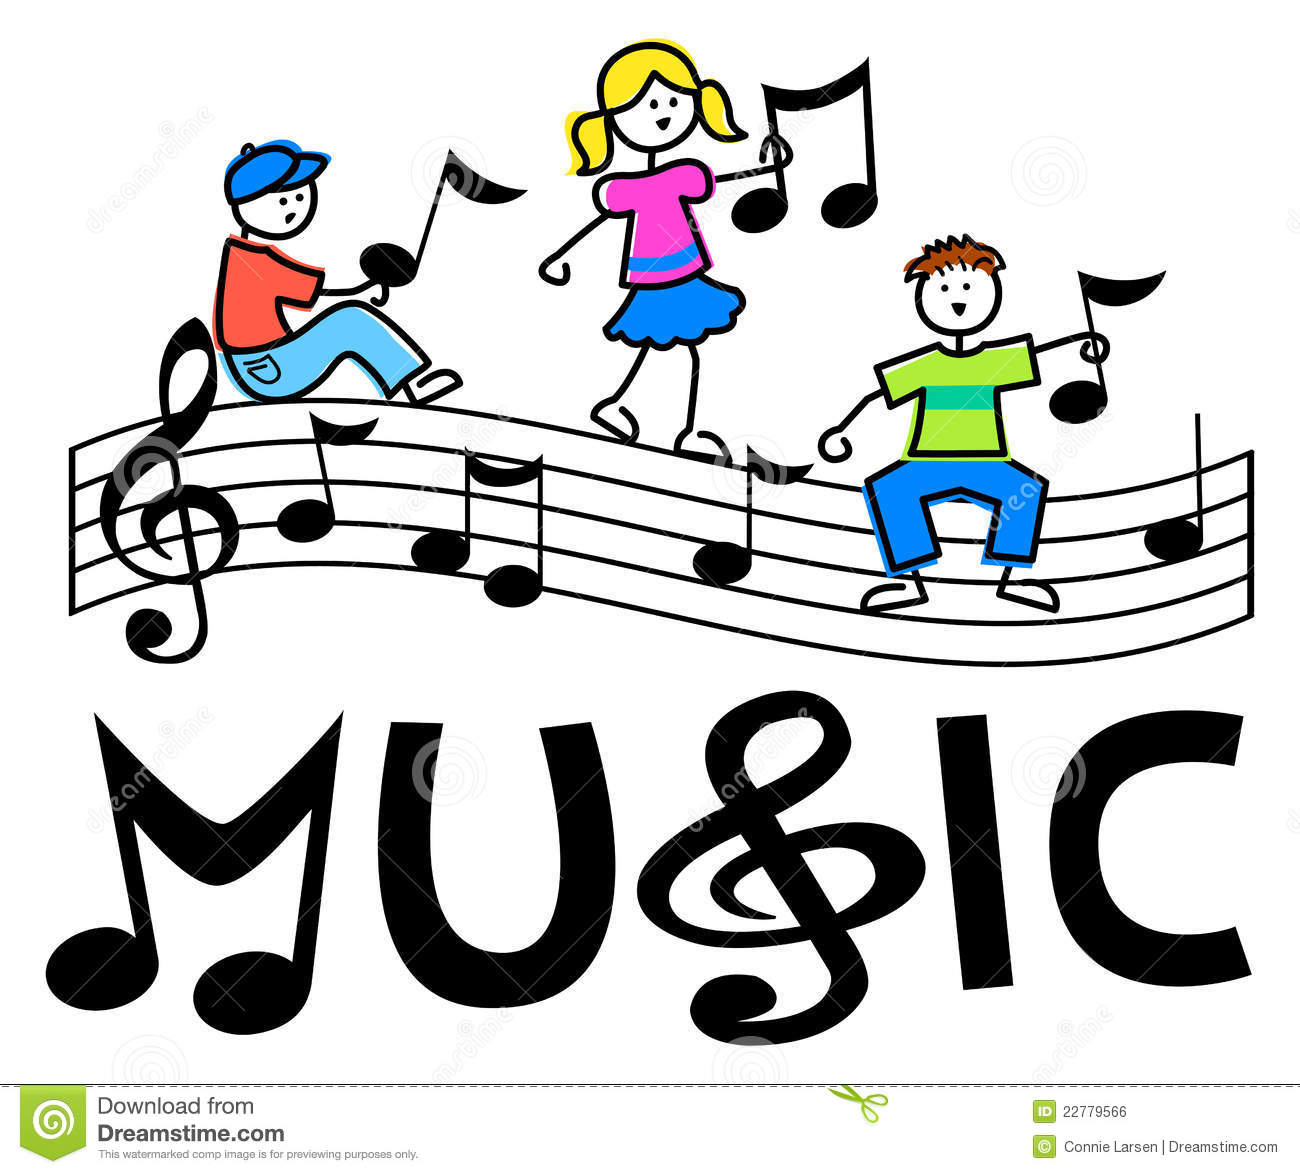 Uncategorized Music Cartoons cartoon kids musical bareps royalty free stock image photo download musical